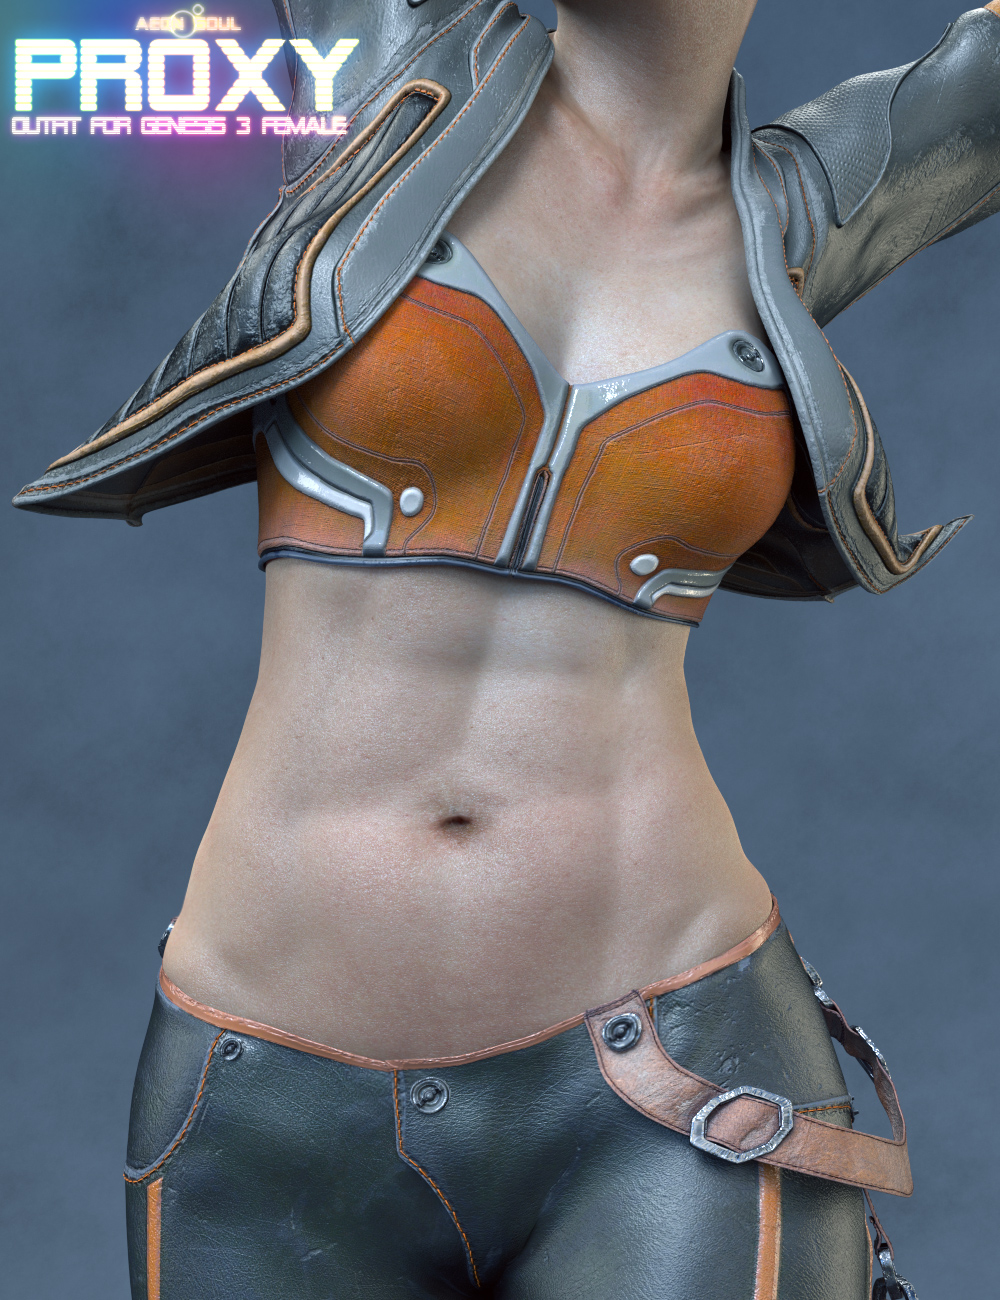 Proxy Outfit for Genesis 3 and 8 Female(s) by: Aeon Soul, 3D Models by Daz 3D